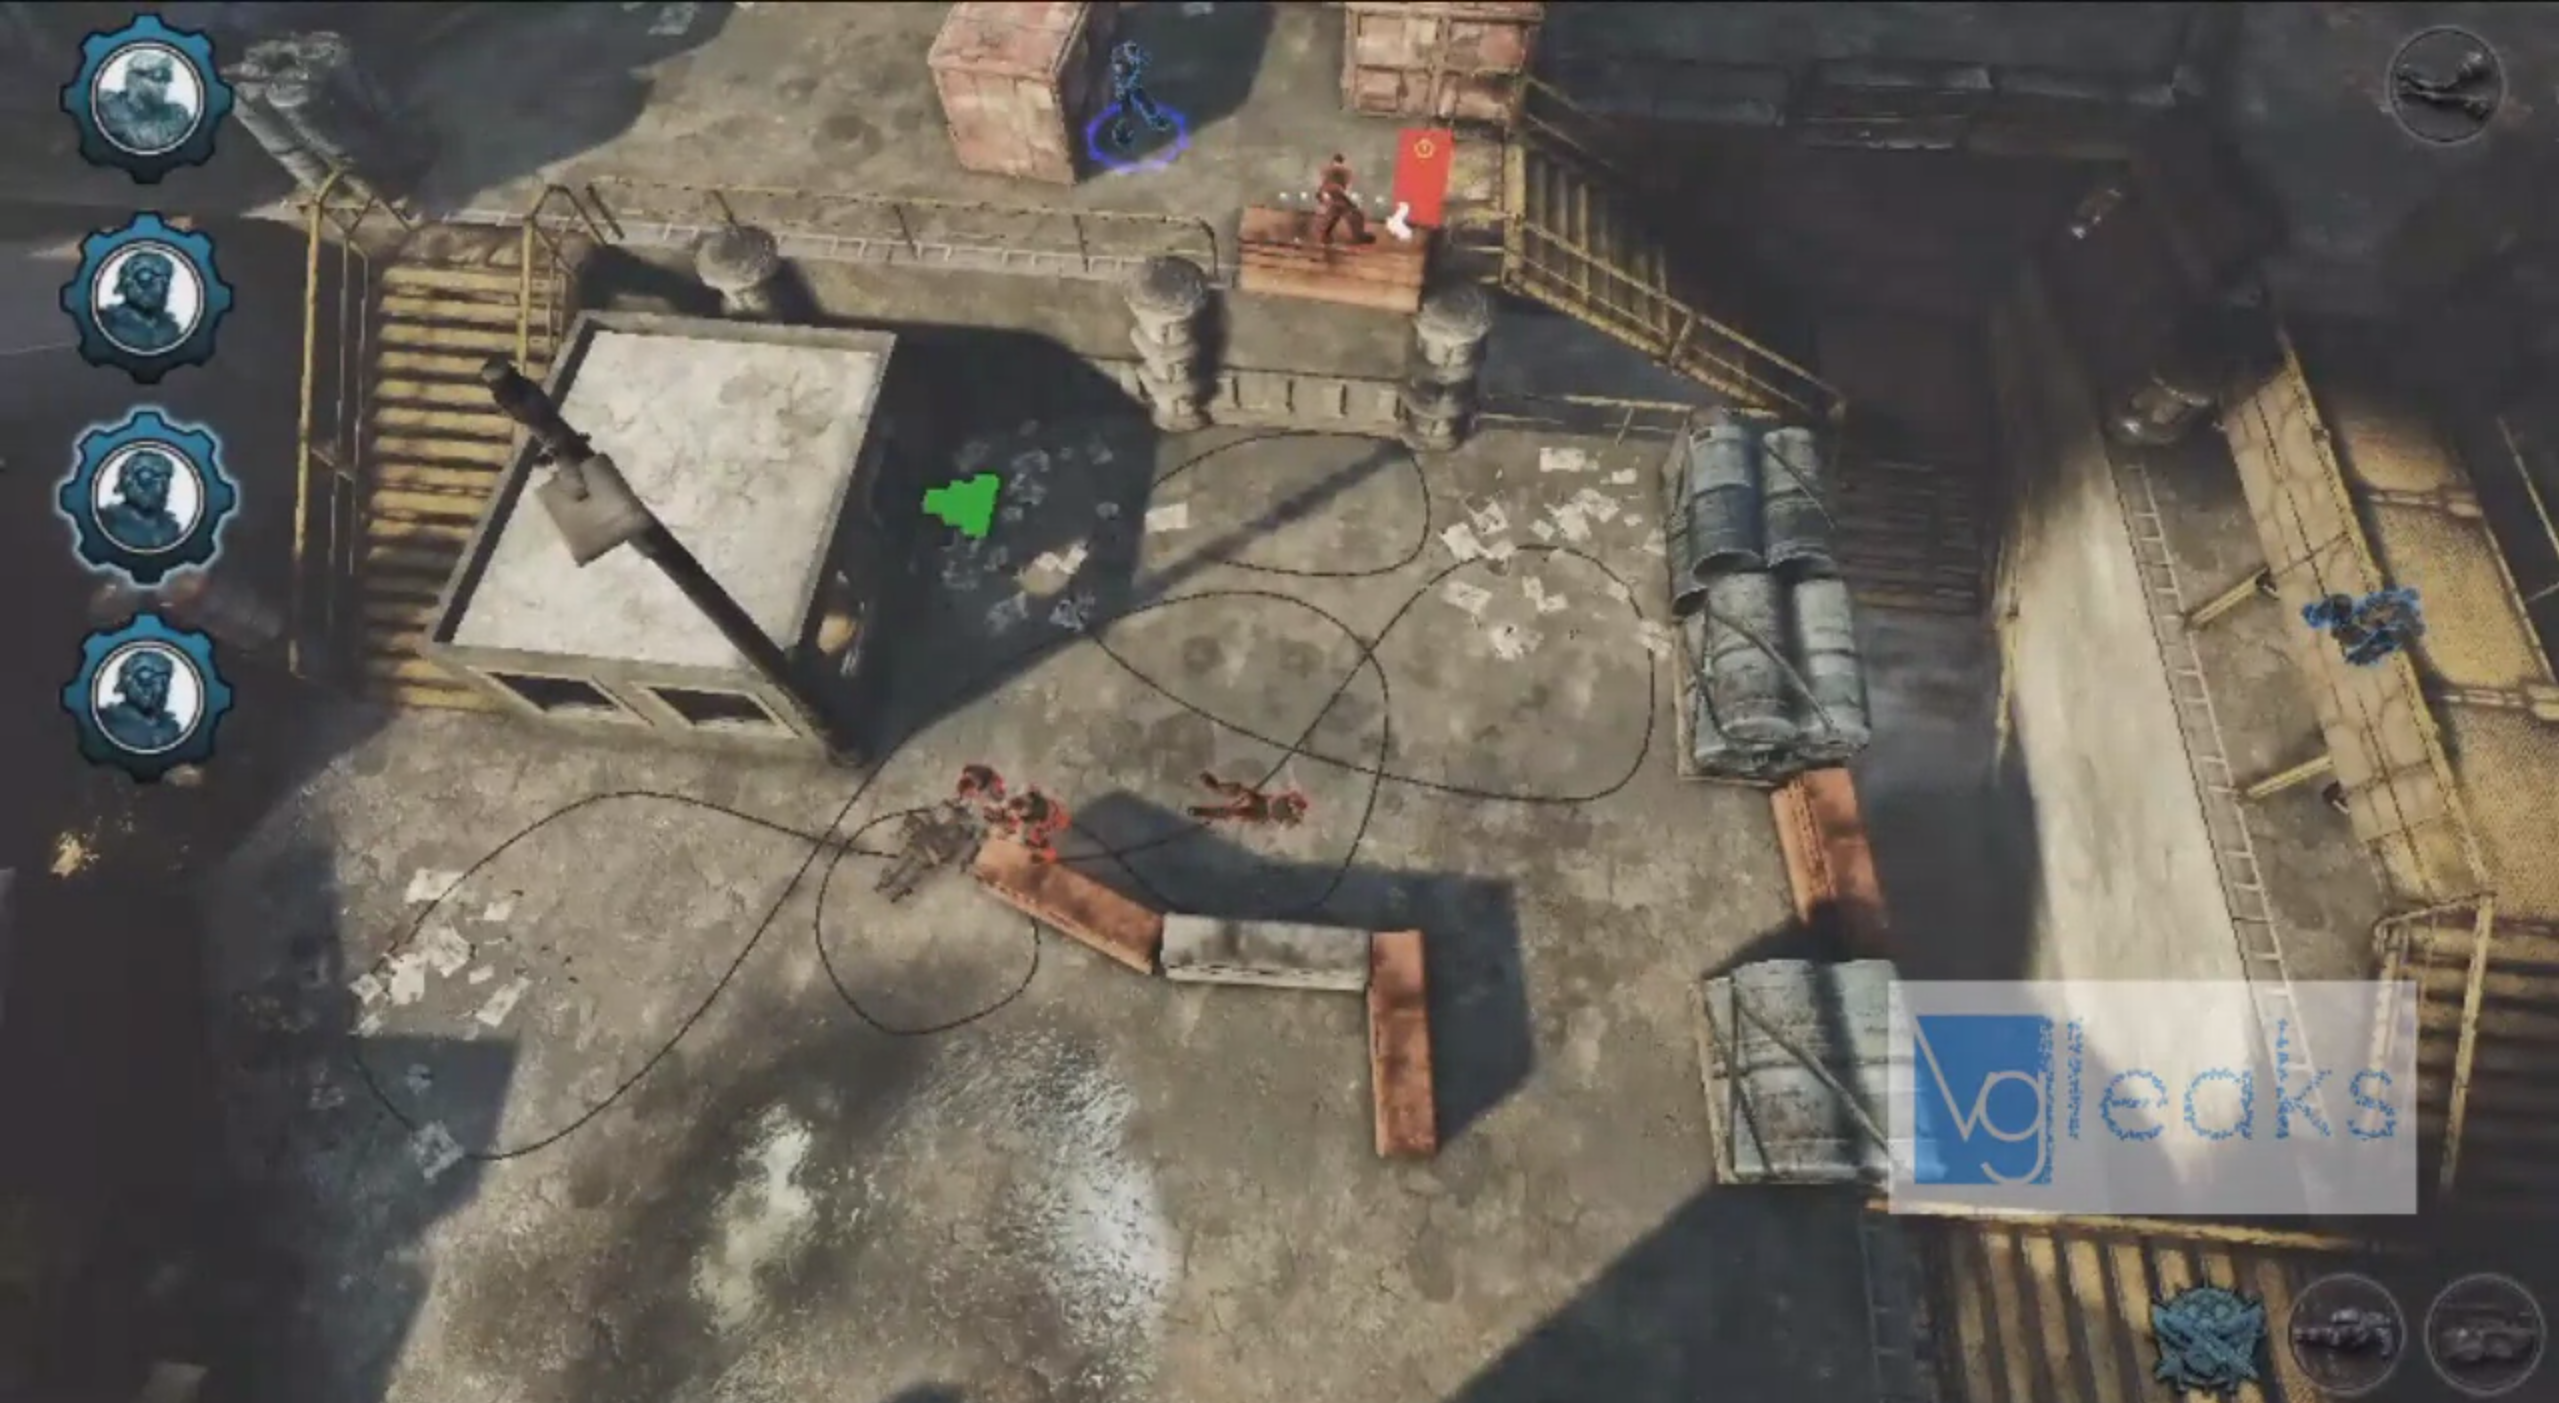 Leaked Video Shows Kinect-Controlled Gears of War Strategy Game